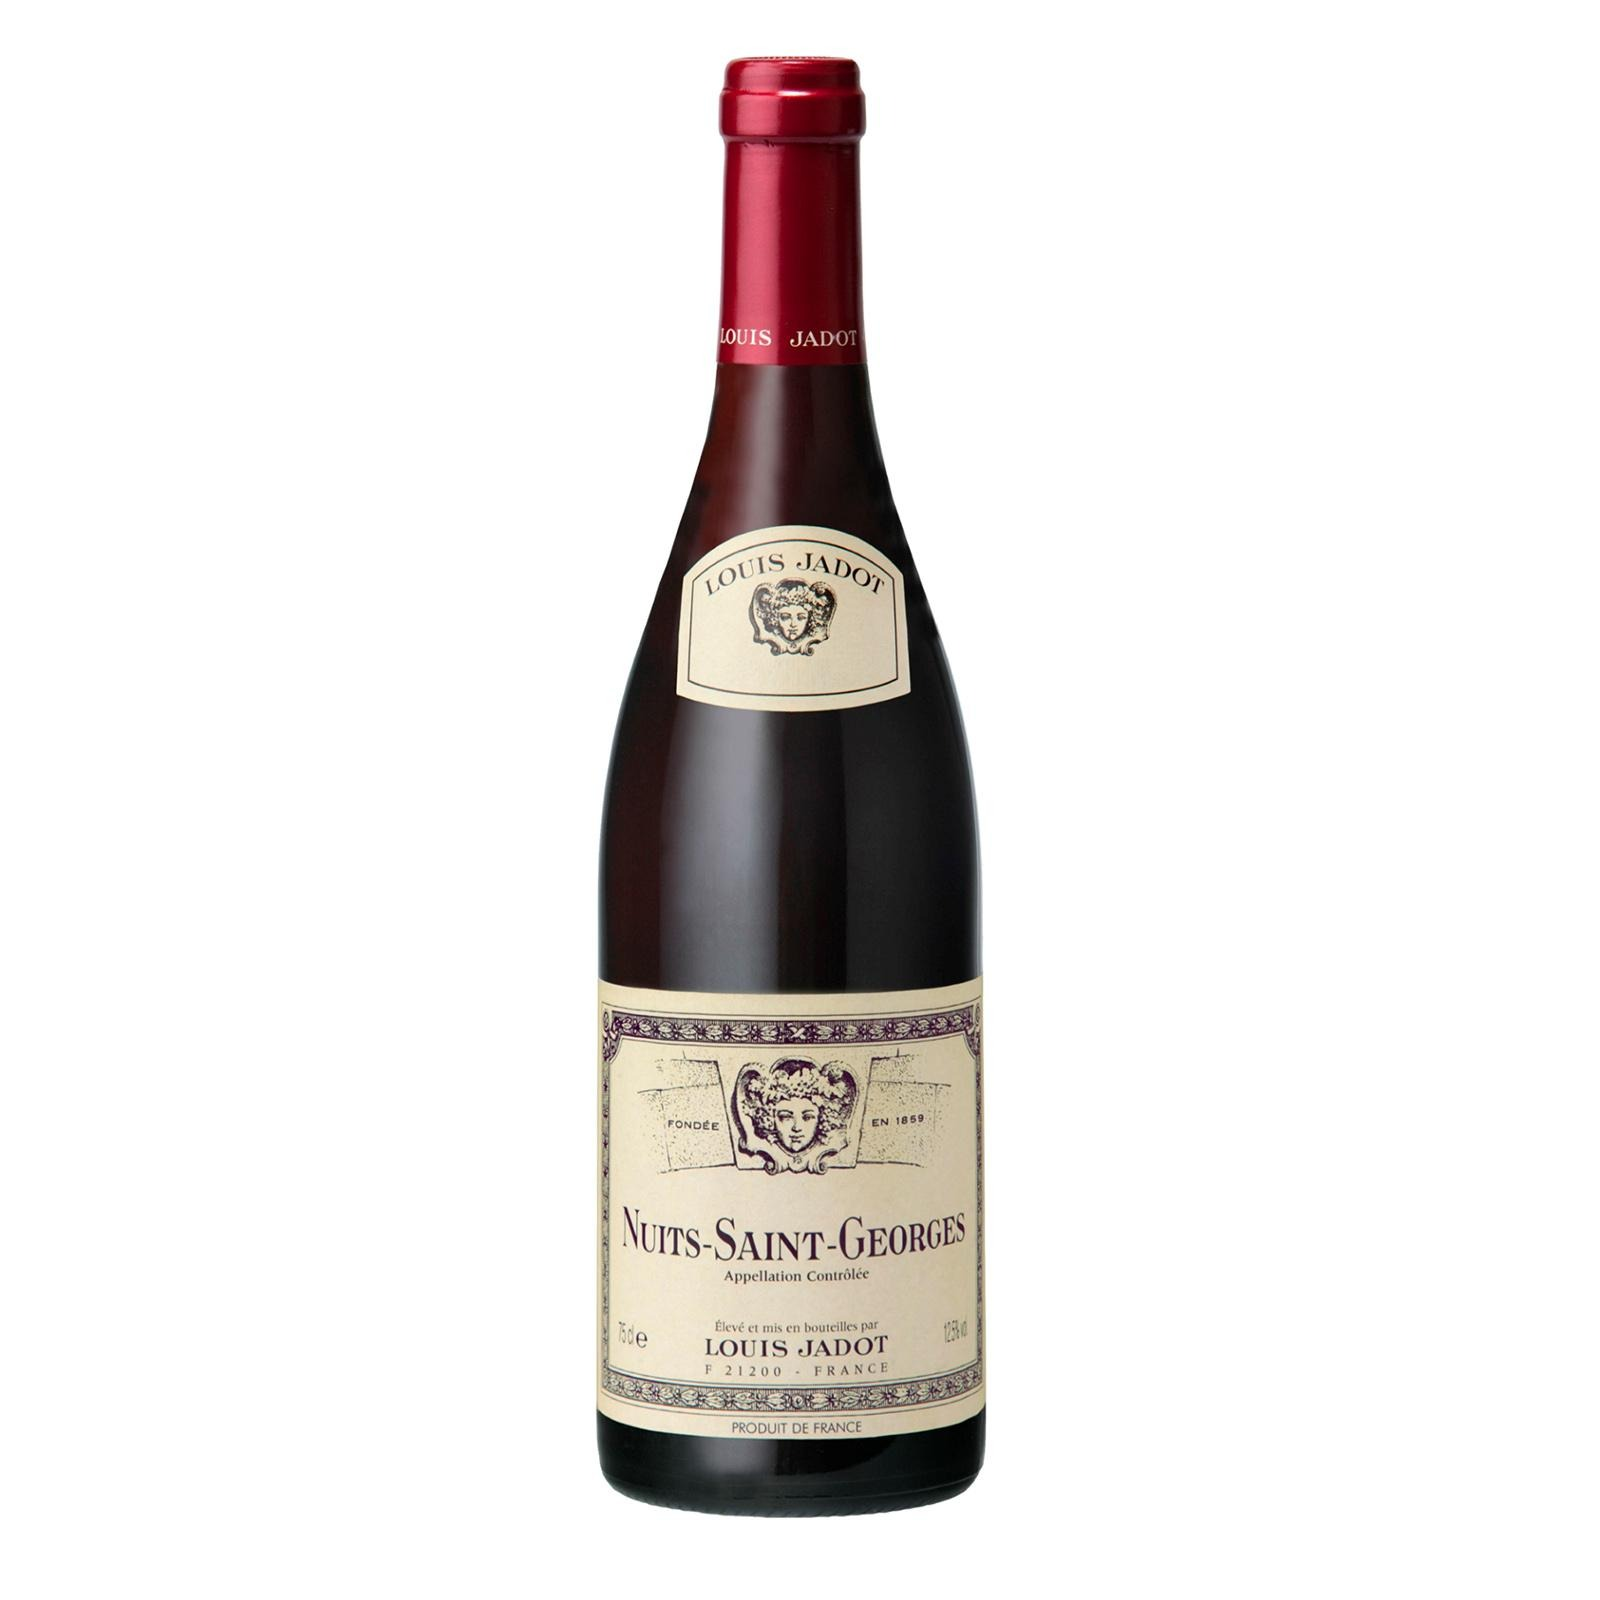 Louis Jadot Nuits-Saint-Georges-By Culina